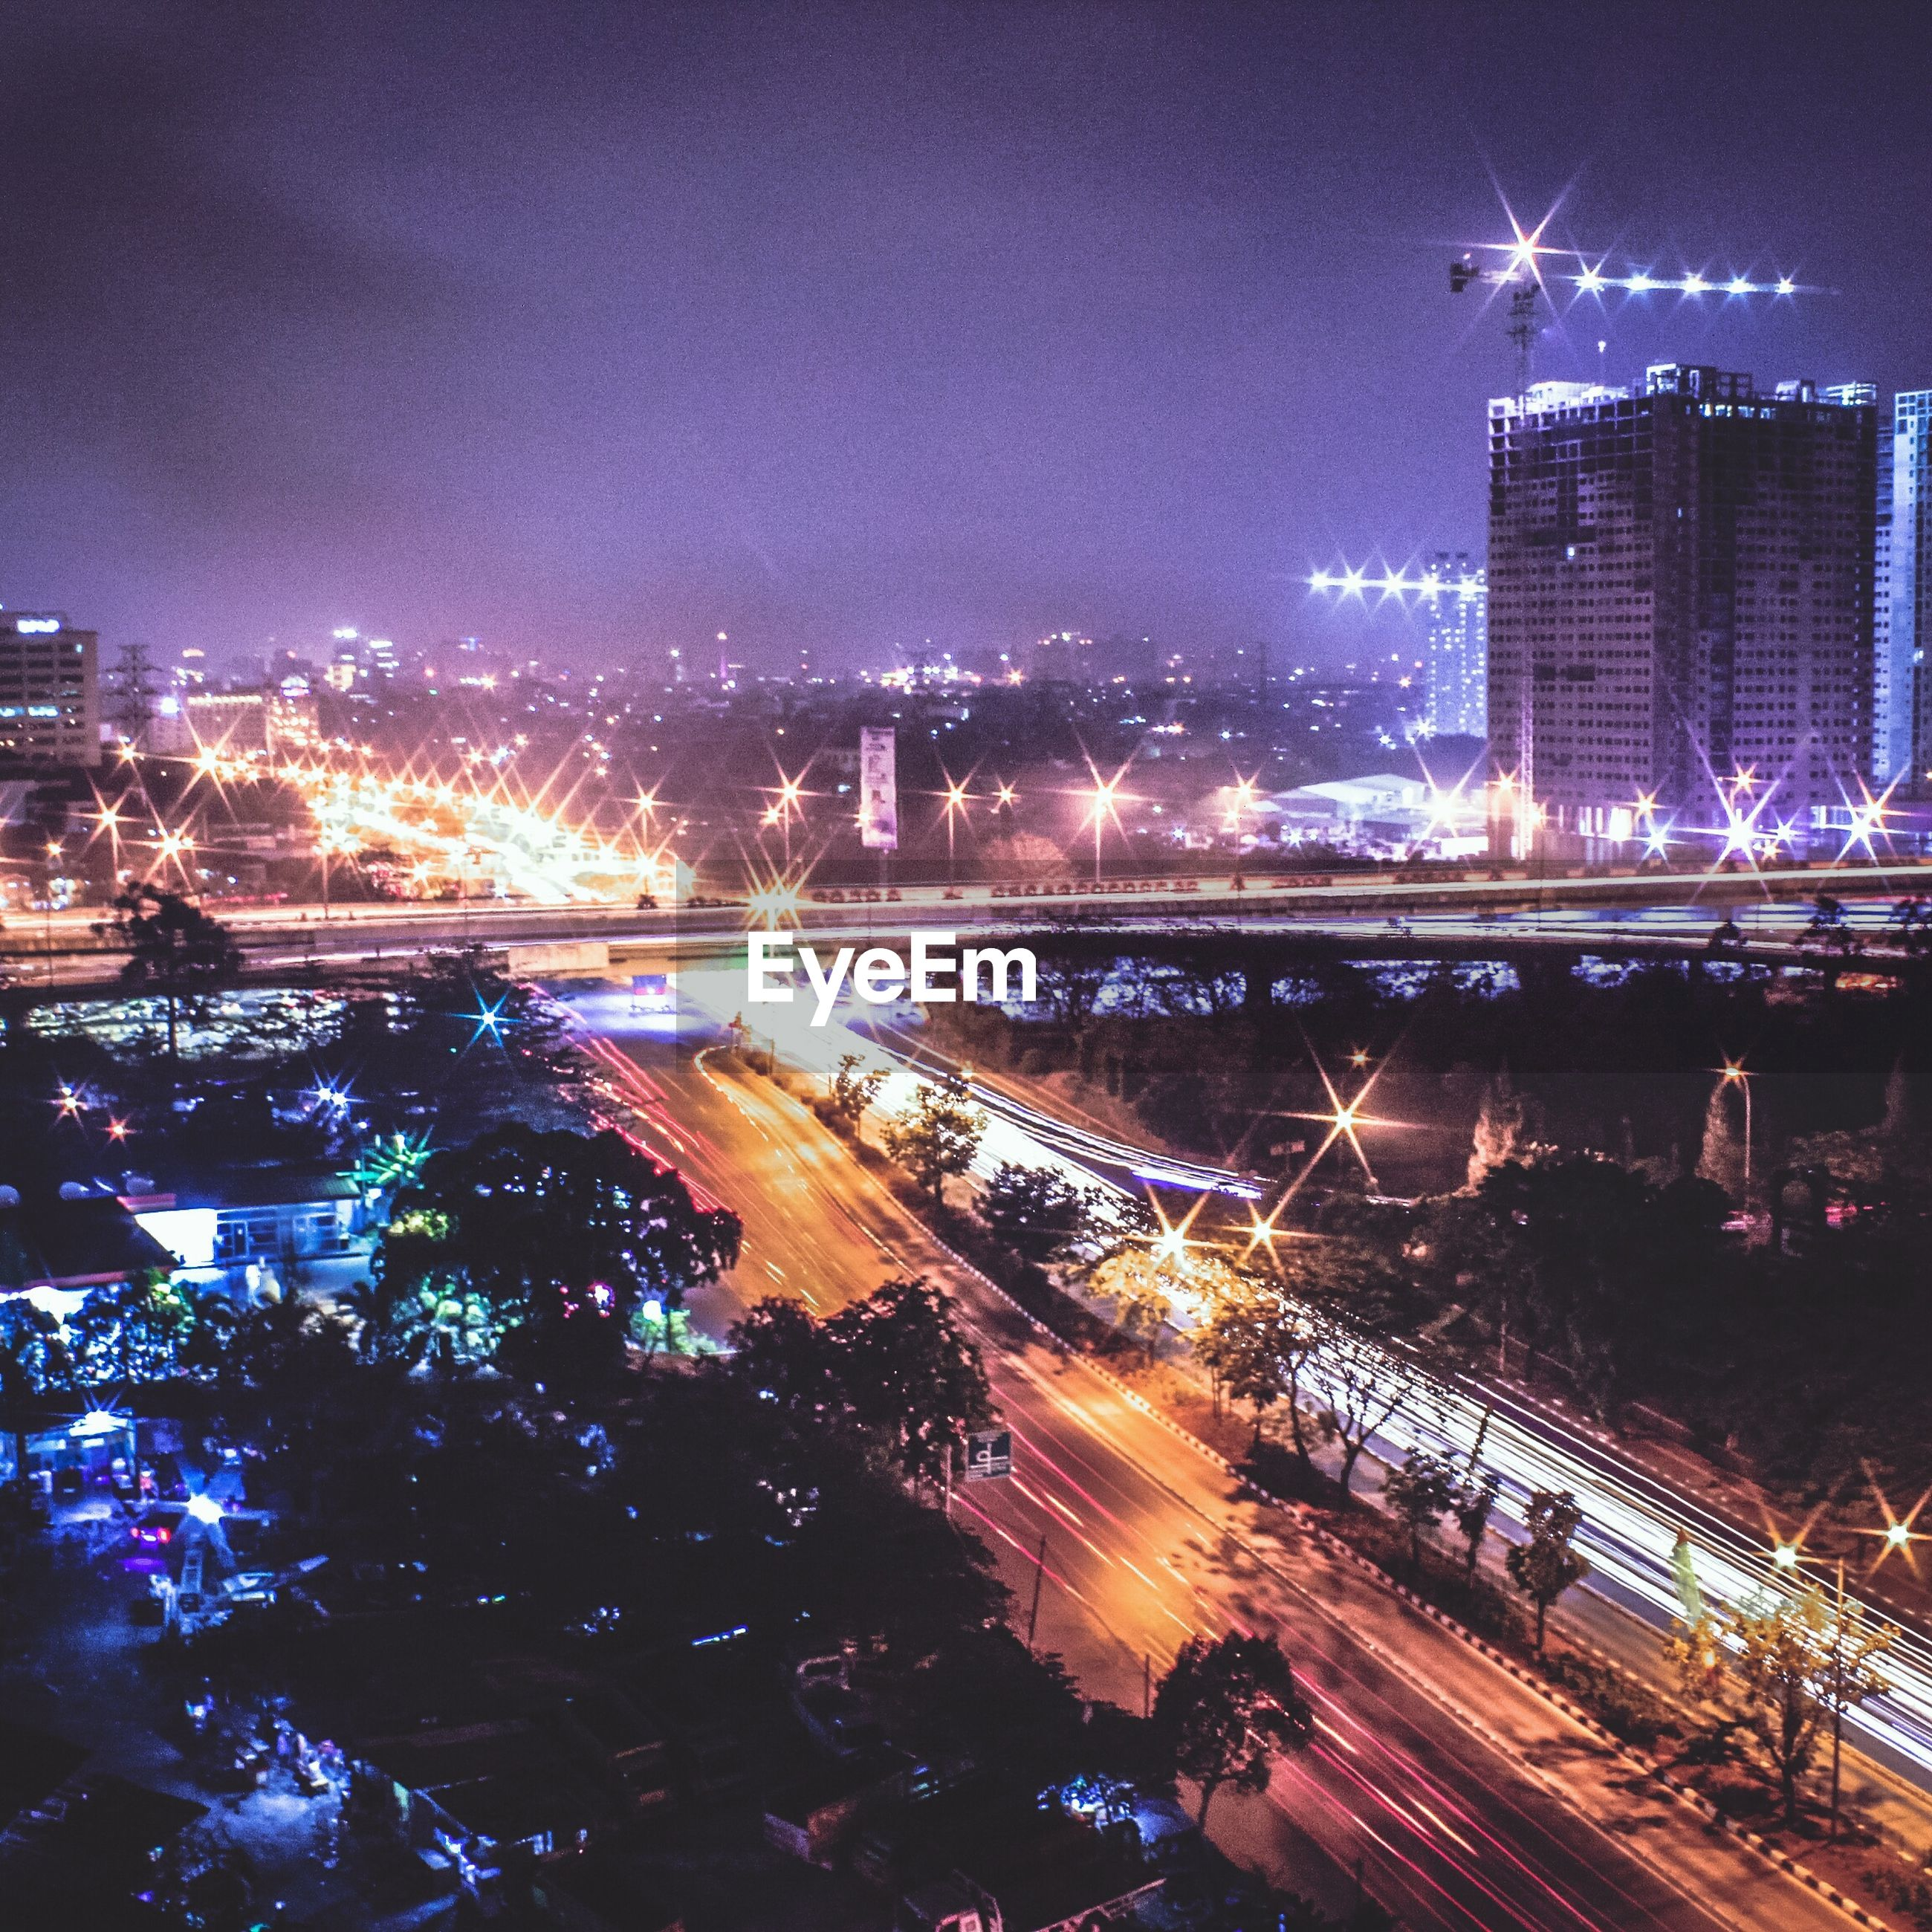 illuminated, night, architecture, city, long exposure, building exterior, motion, light trail, built structure, speed, cityscape, city life, skyscraper, outdoors, blurred motion, no people, sky, transportation, water, road, travel destinations, urban skyline, urban scene, high street